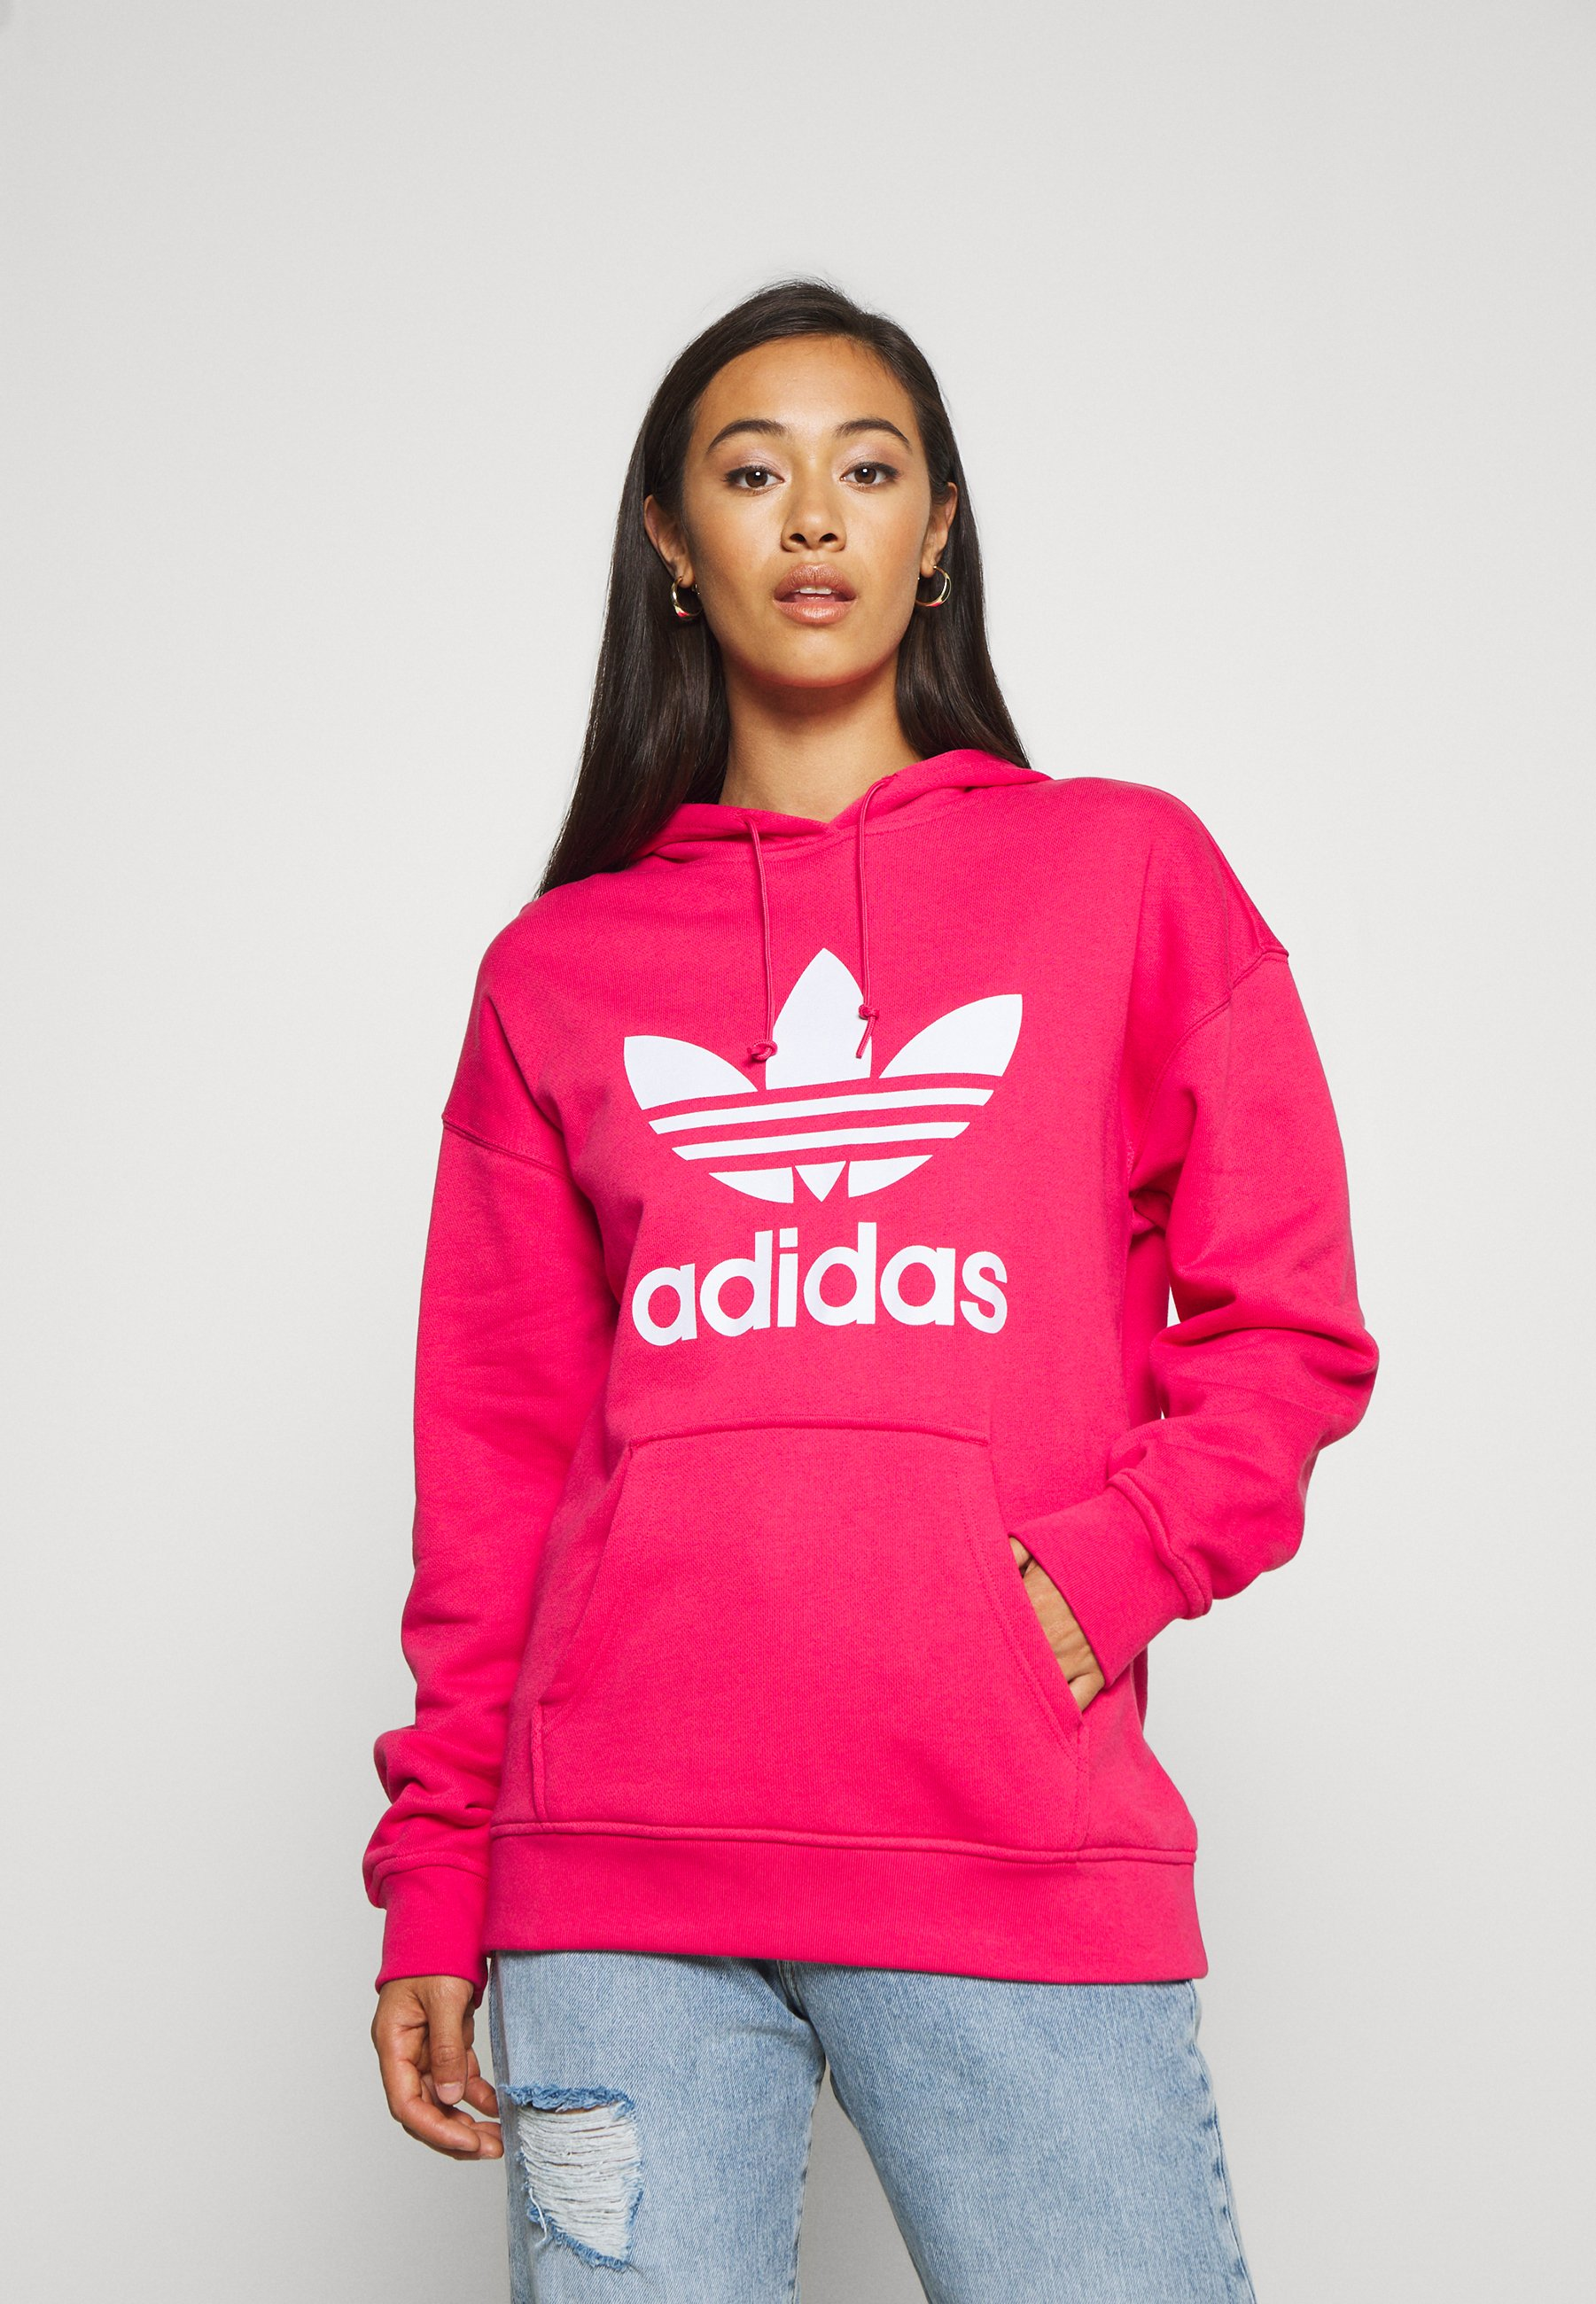 Arte amenaza salchicha  adidas Originals ADICOLOR TREFOIL ORIGINALS HODDIE - Hoodie - power pink/ white/pink - Zalando.co.uk